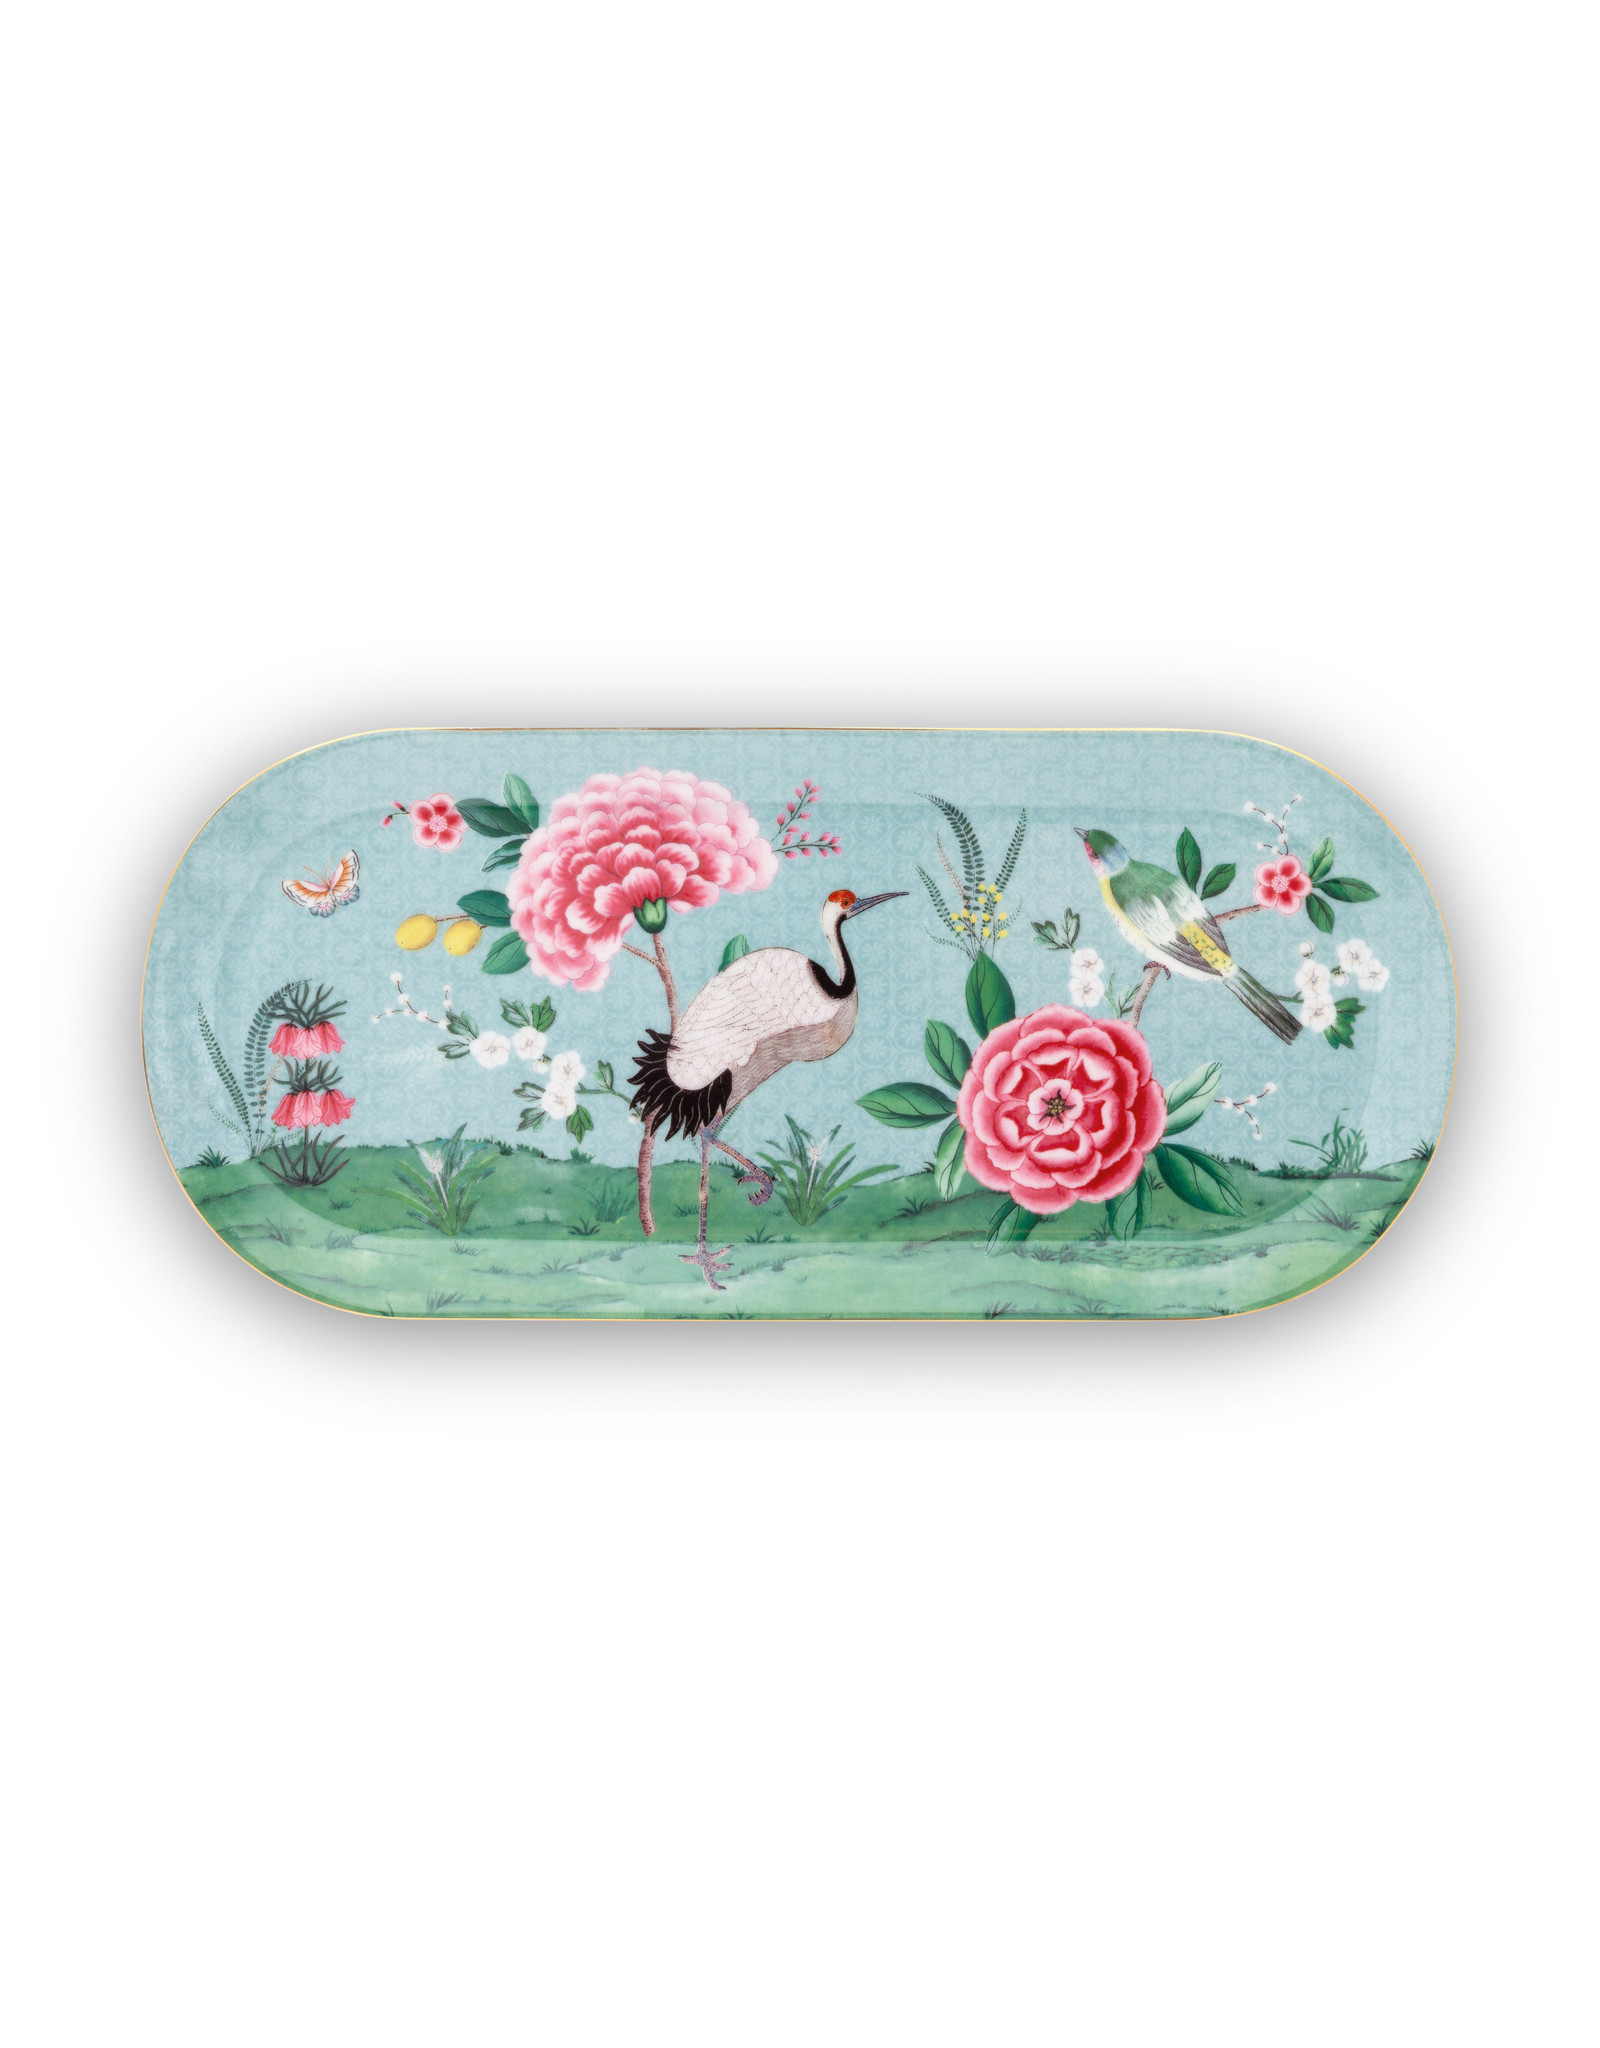 pip studio Cake Tray Rectangular Blushing Birds Blue 33.3x15.5cm